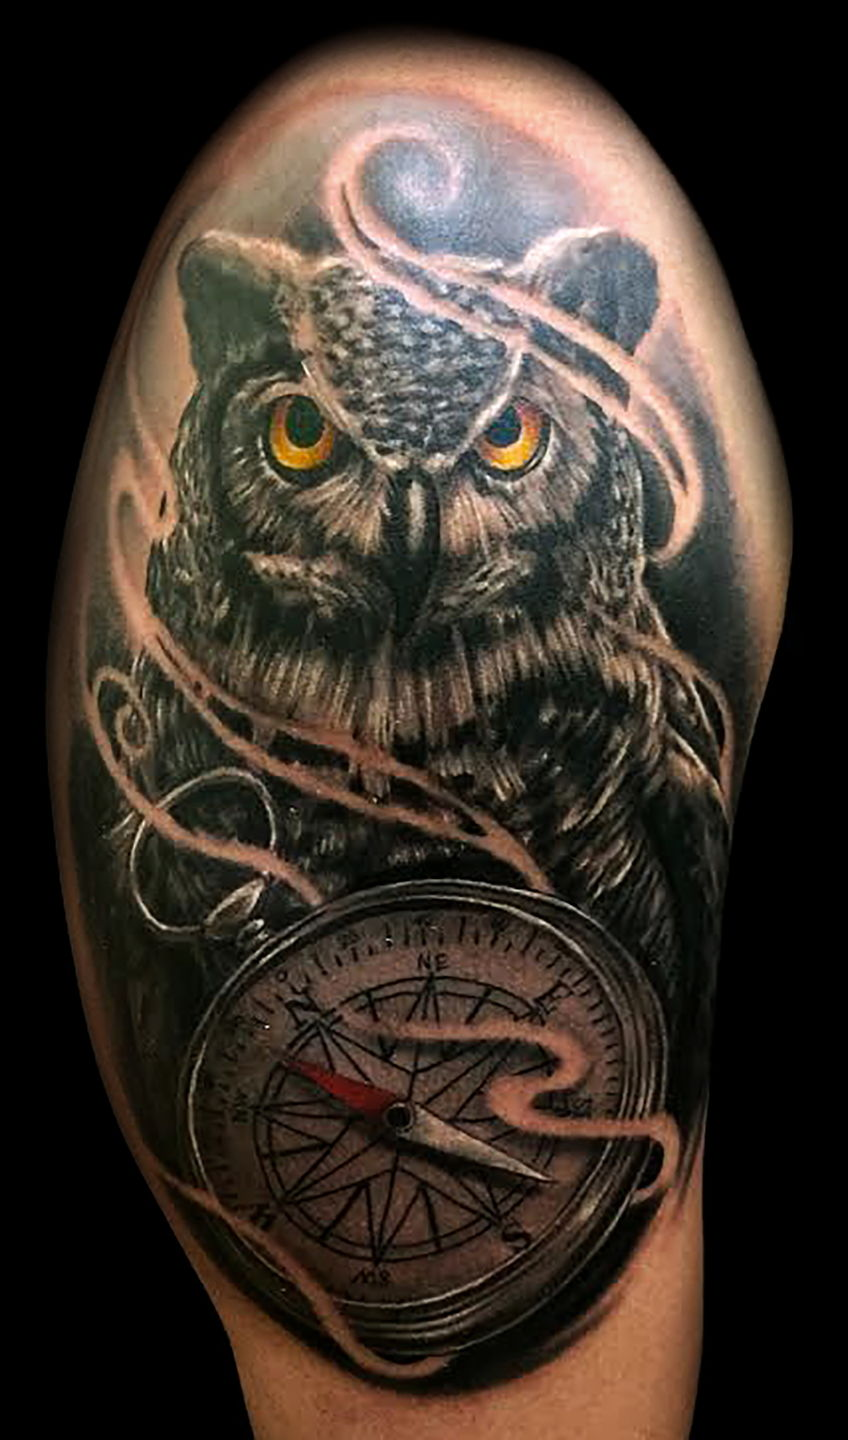 Las-vegas-tattoo-artist_joe-riley_owl-compass-tattoos